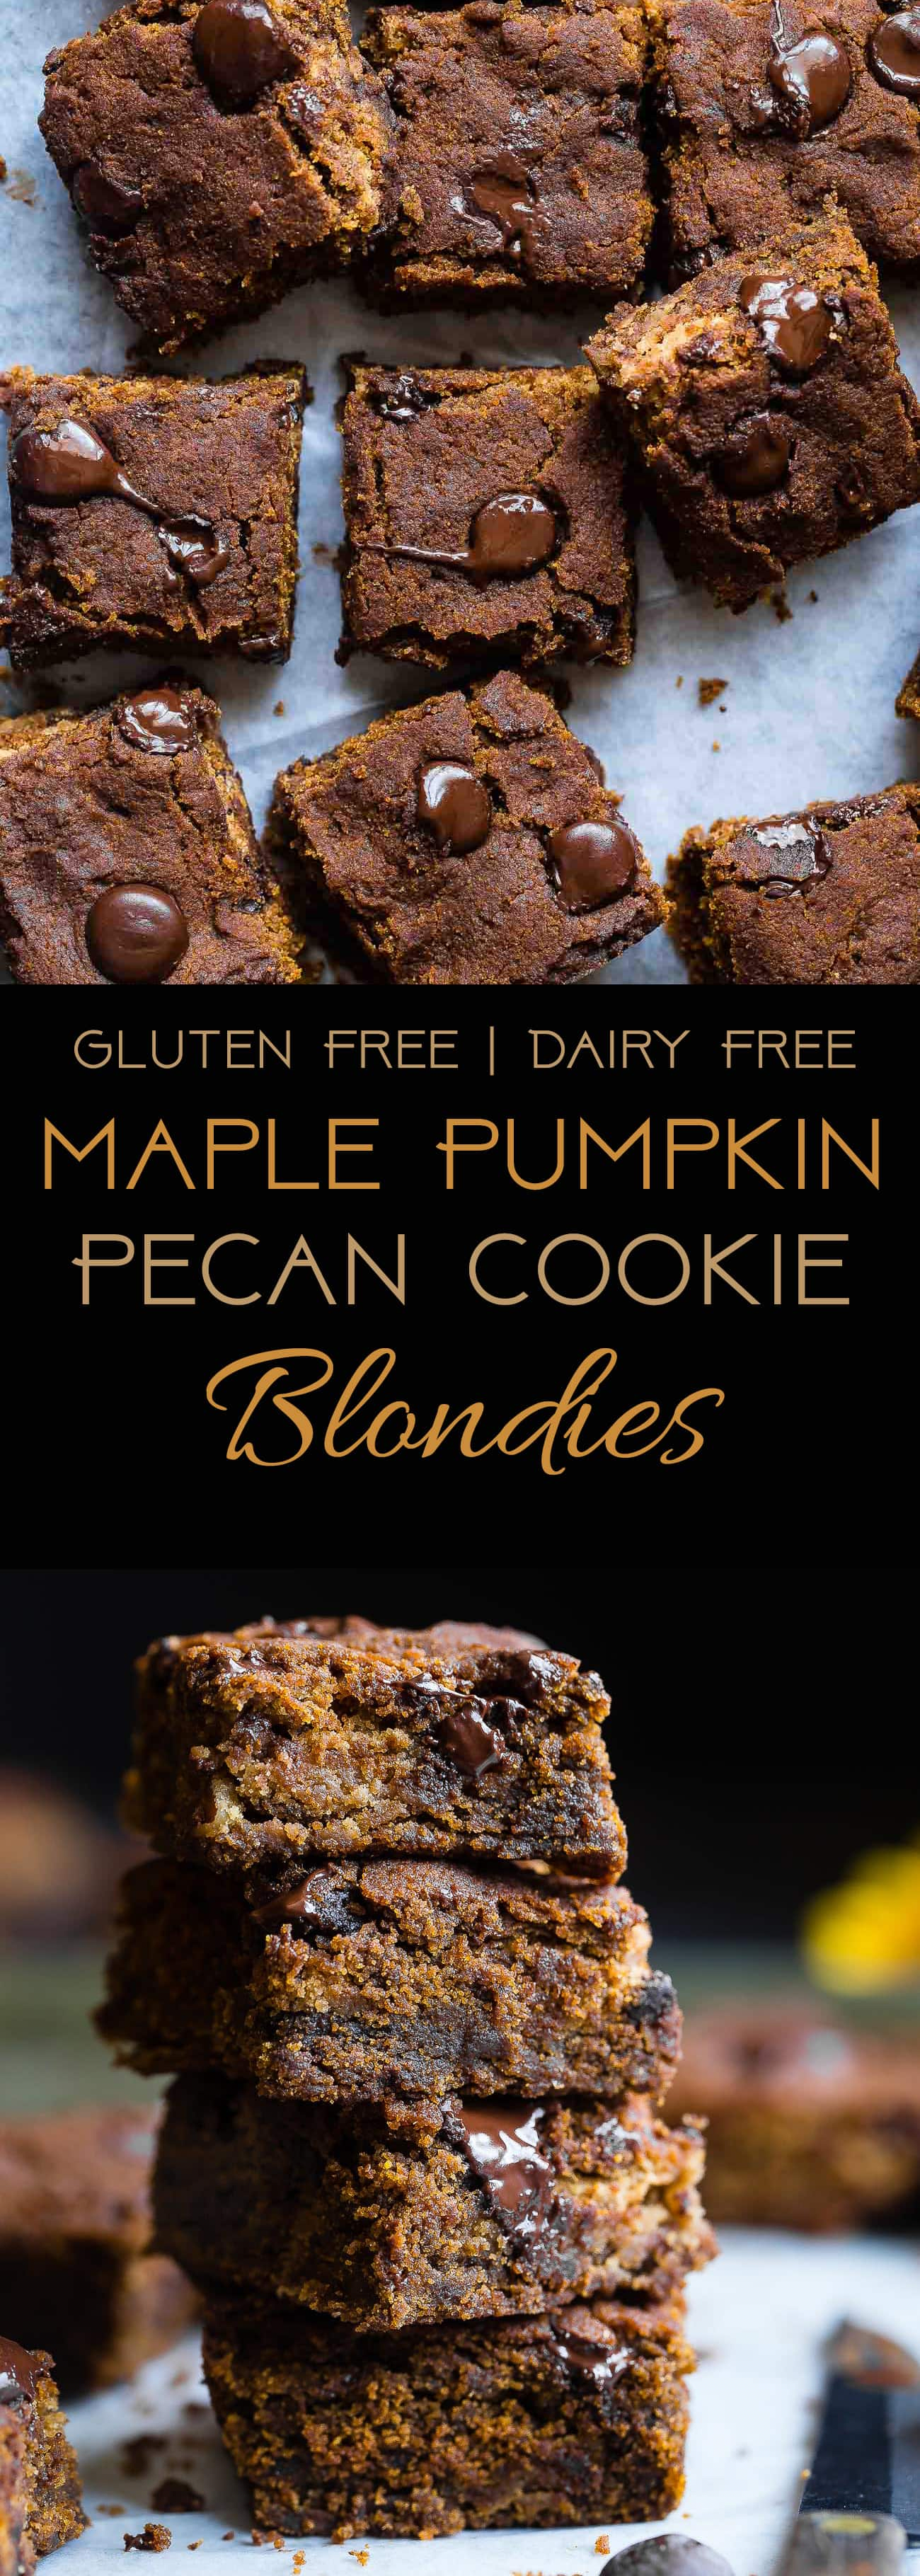 Cookie Stuffed Pumpkin Blondies -Cookies are baked right inside these healthier pumpkin brookies! They're so dense and chewy you'll never know they're gluten and dairy free! | Foodfaithfitness.com | @FoodFaithFit | Gluten Free Pumpkin Blondies. Easy Pumpkin Blondies. Chocolate Chip Pumpkin Blondies. Pumpkin Brownies. Healthy Pumpkin Brownies. Pumpkin Brownies Recipe. Easy Pumpkin Brownies. Pumpkin Brownies from Scratch. Gluten Free Pumpkin Brownies. Flourless Pumpkin Brownies.